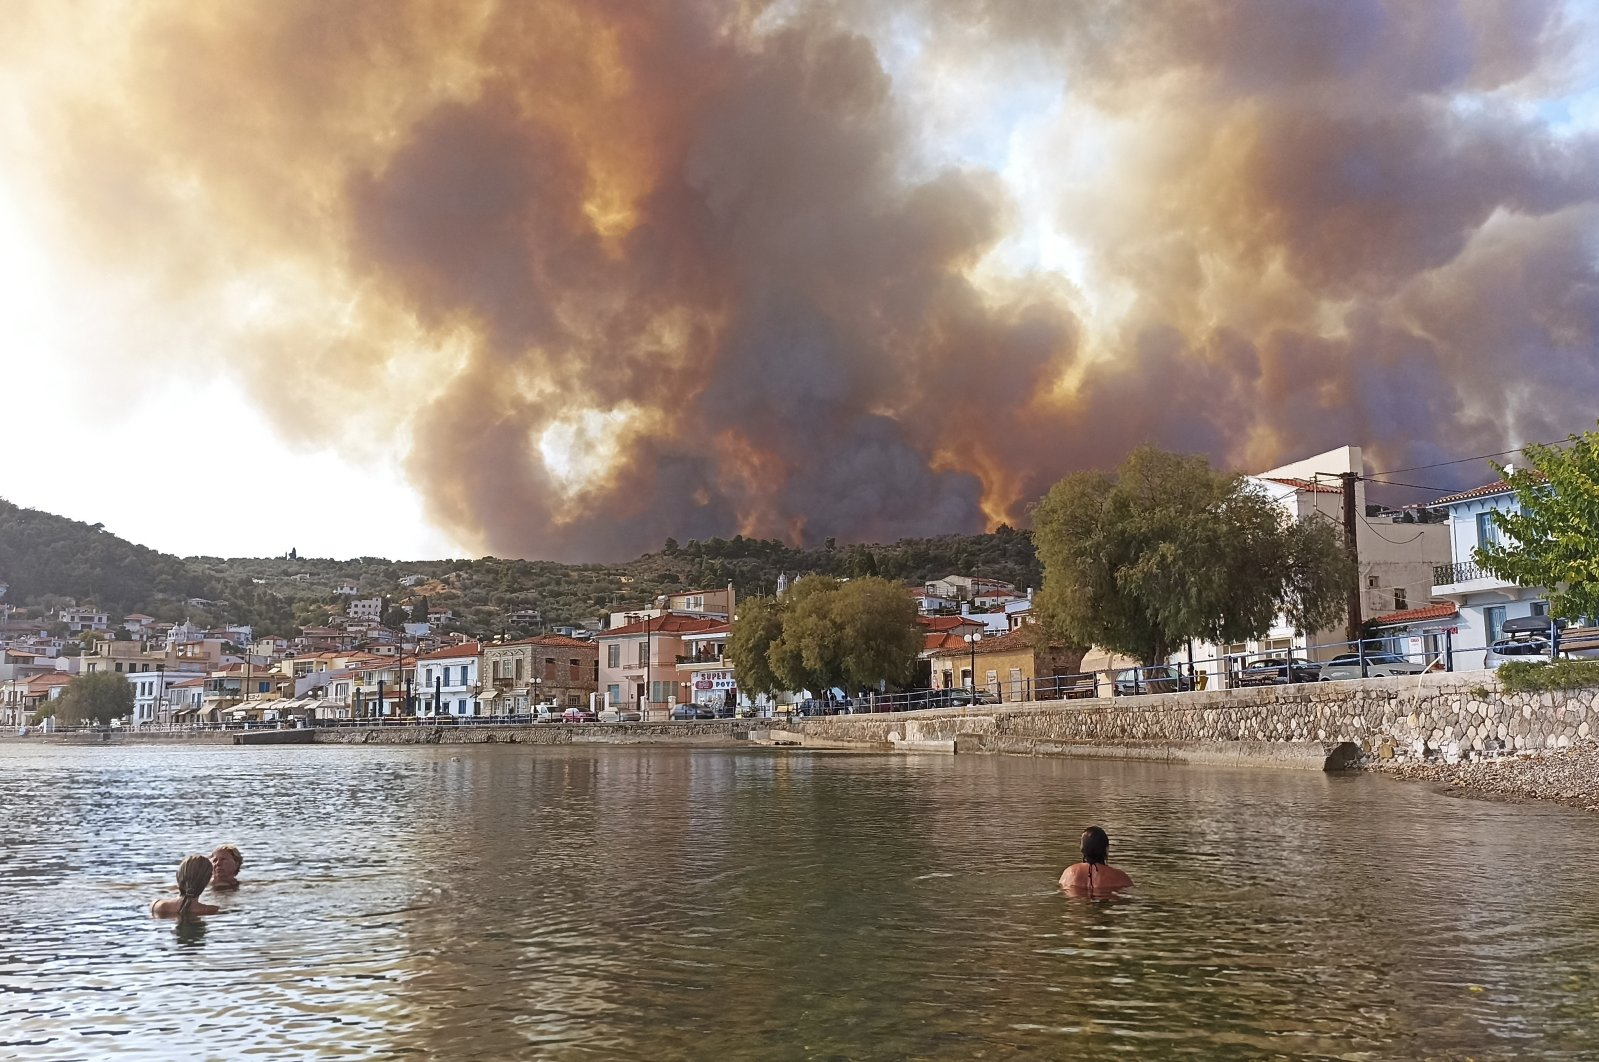 Flames burn on the mountain near Limni village on the island of Evia, about 160 kilometers (100 miles) north of Athens, Greece, Tuesday, Aug. 3, 2021. (AP Photo)